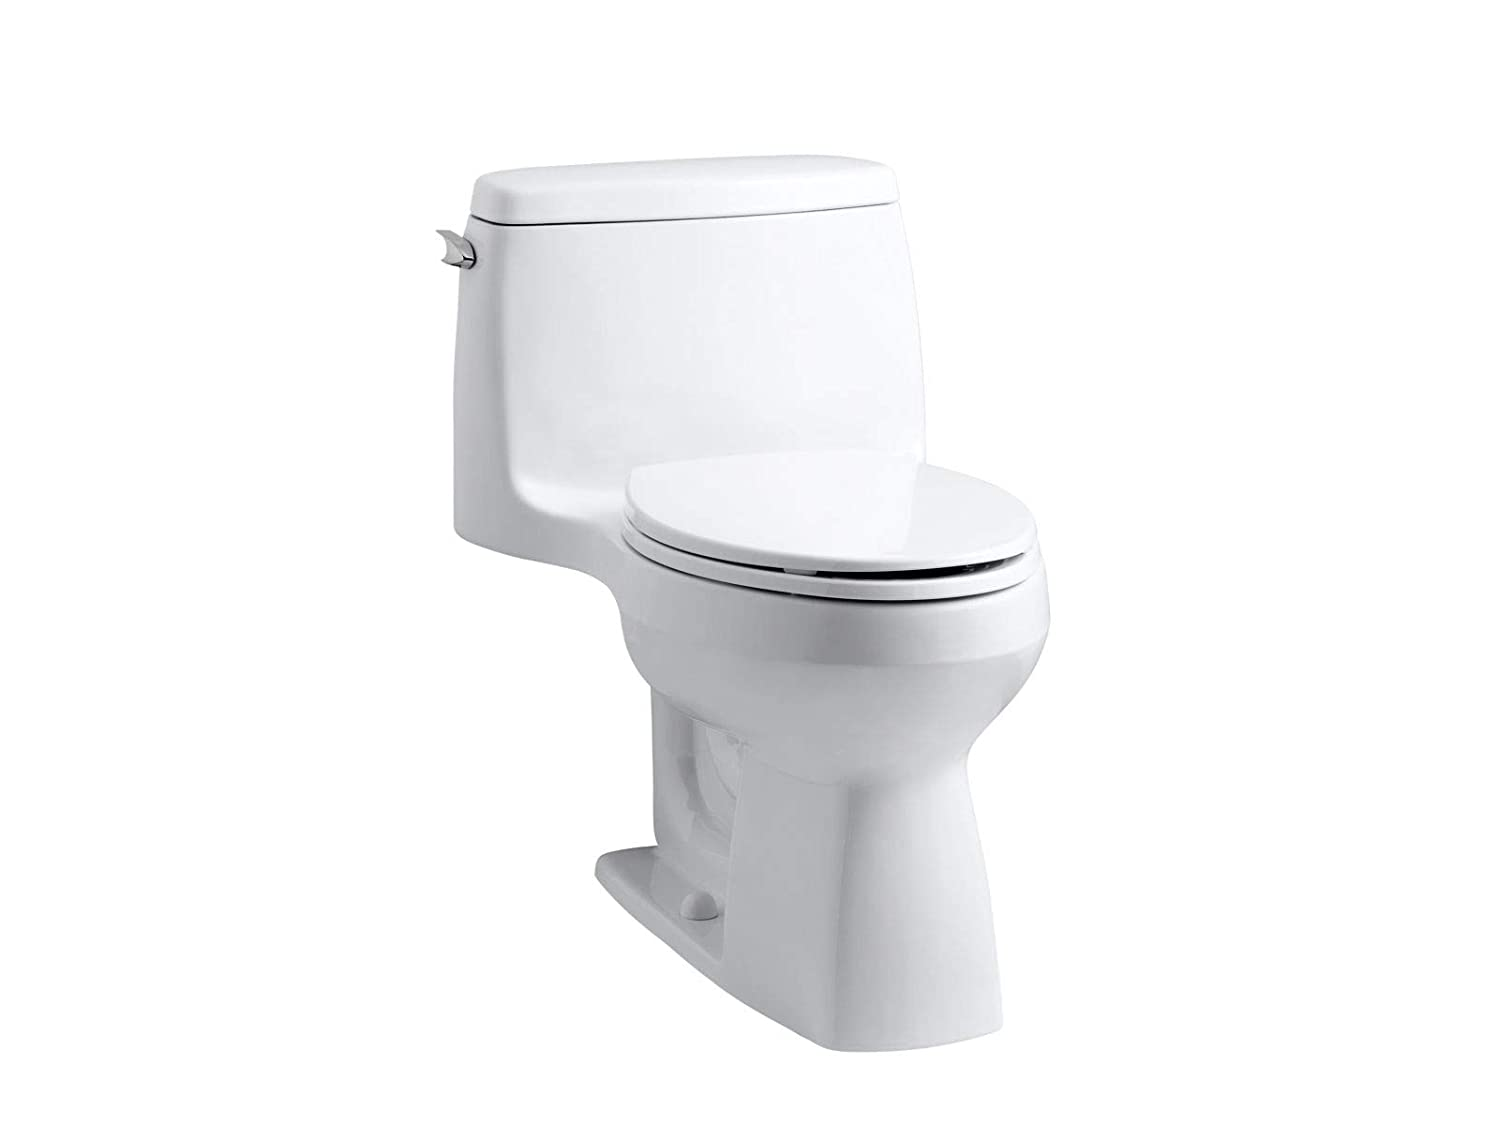 Best Toilets Under $200, $300 to $400 Reviews in 2020 5